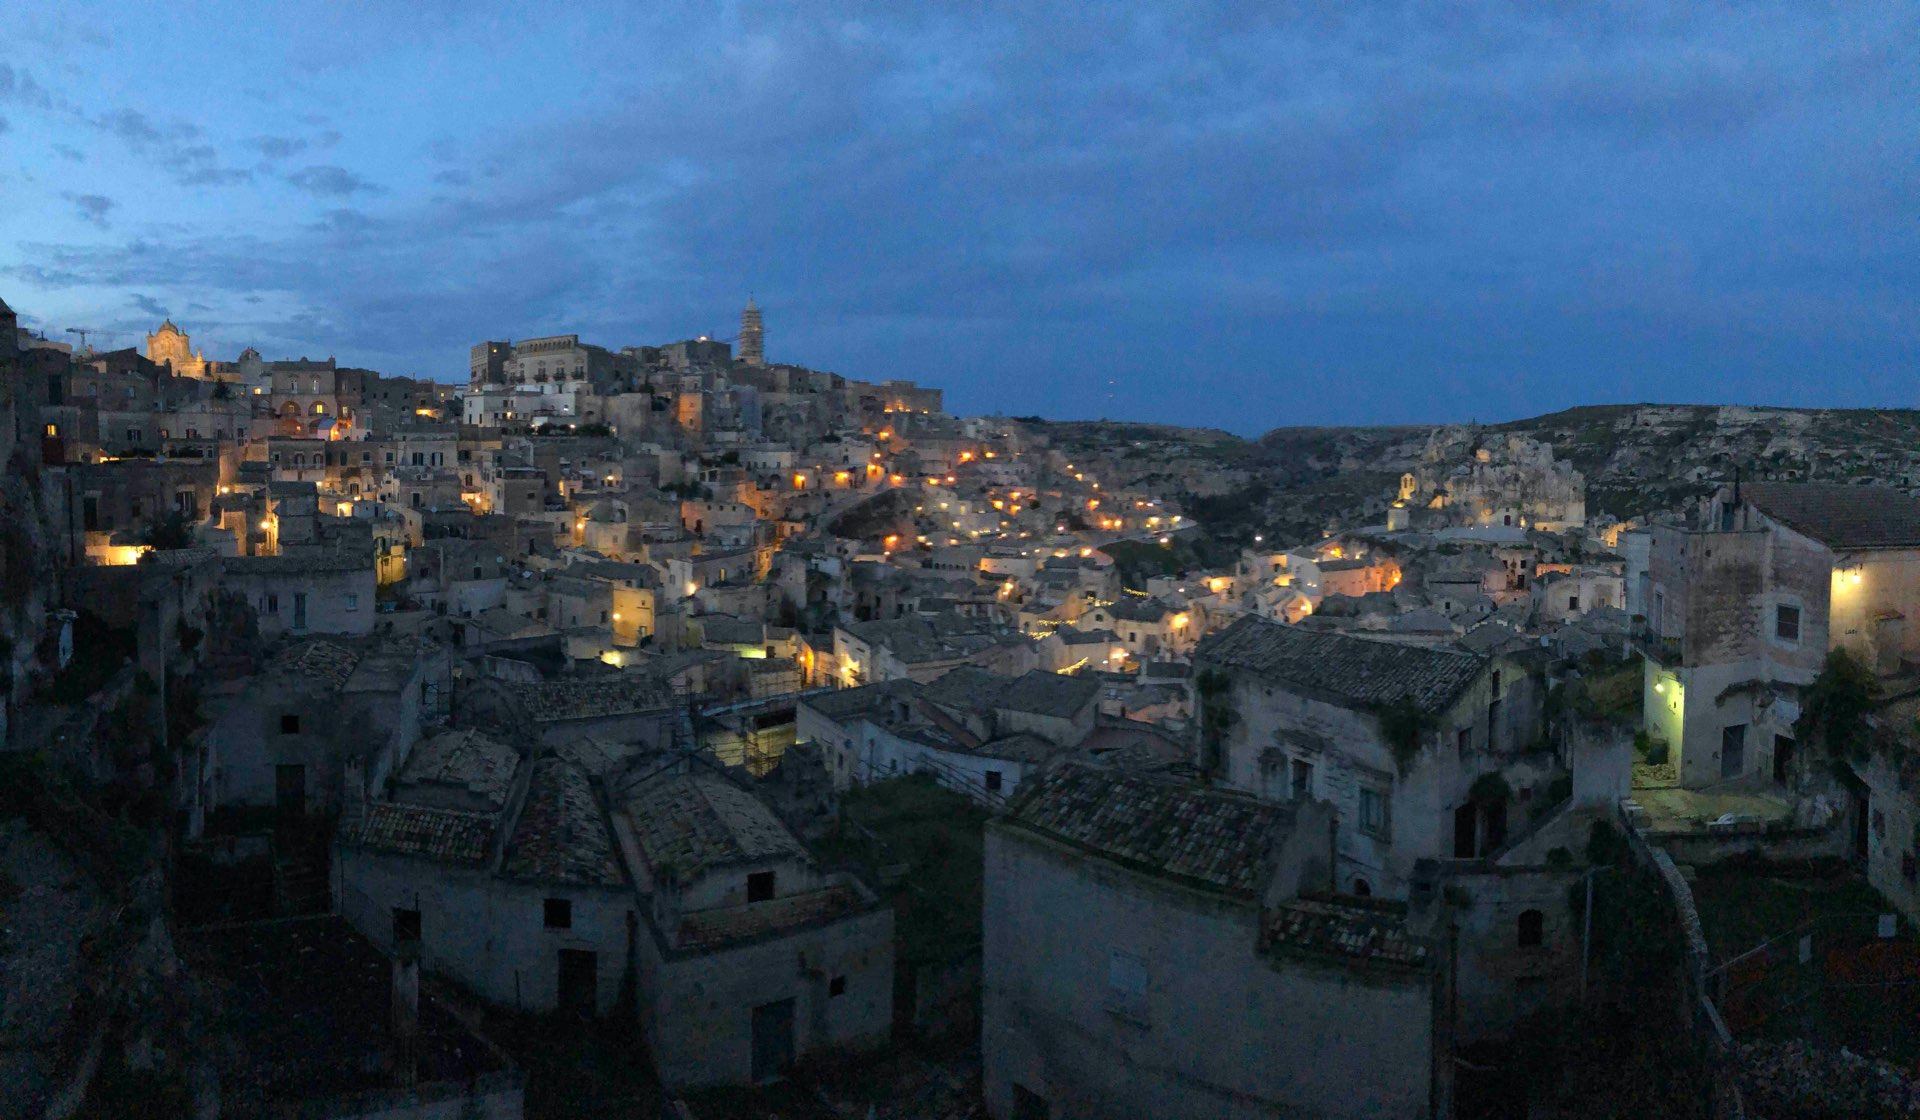 Location Matera di notte